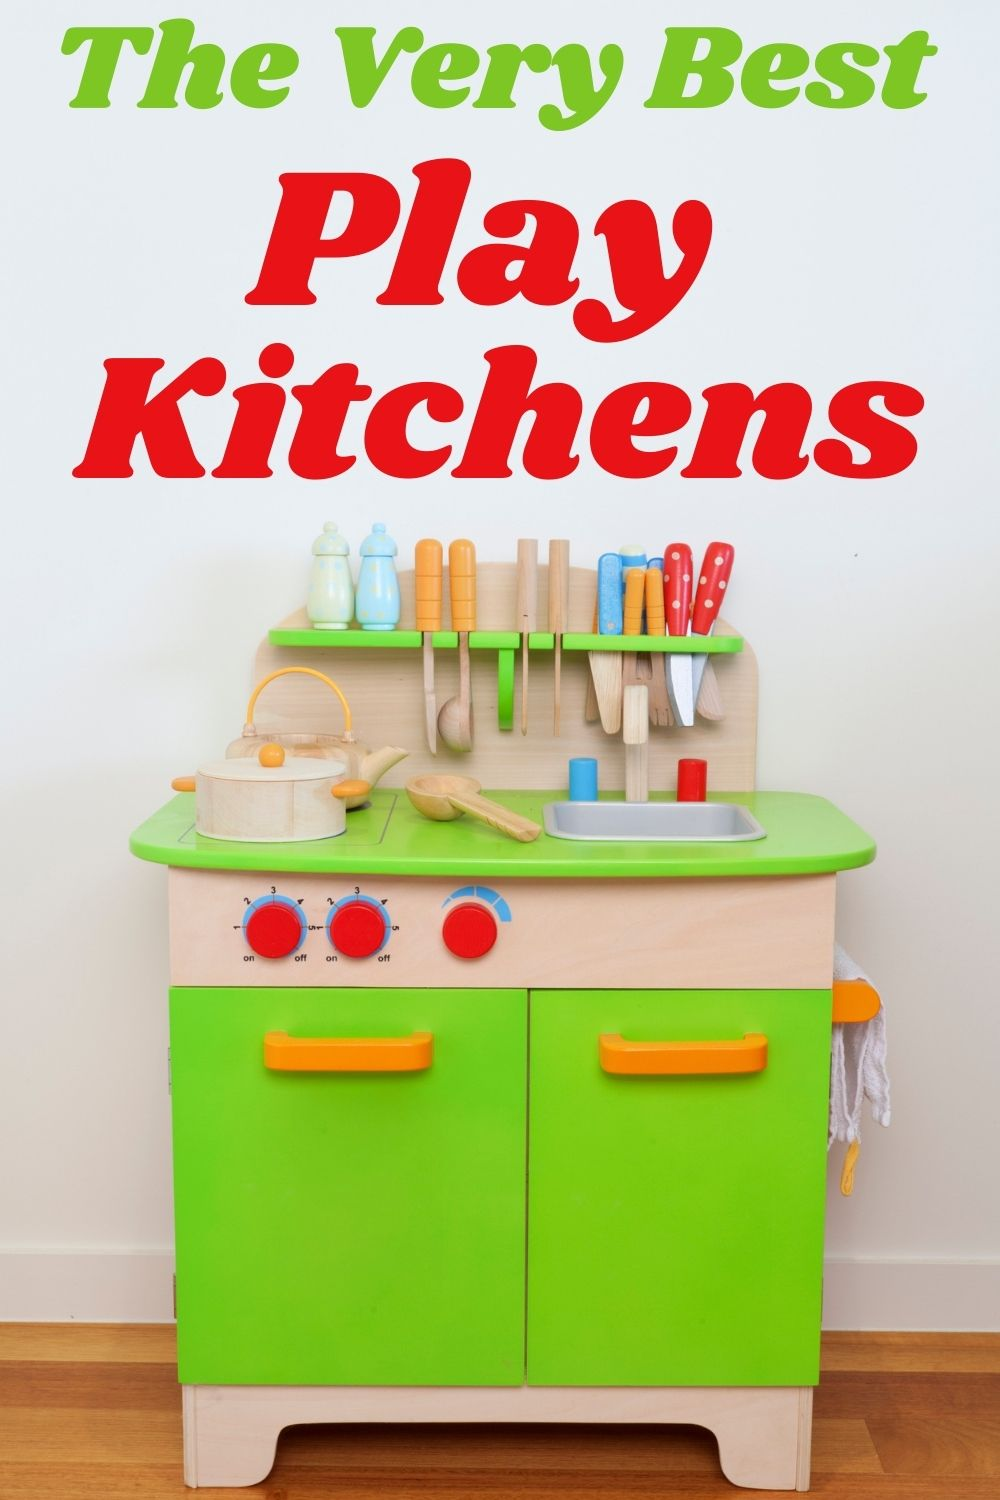 The very best play kitchens